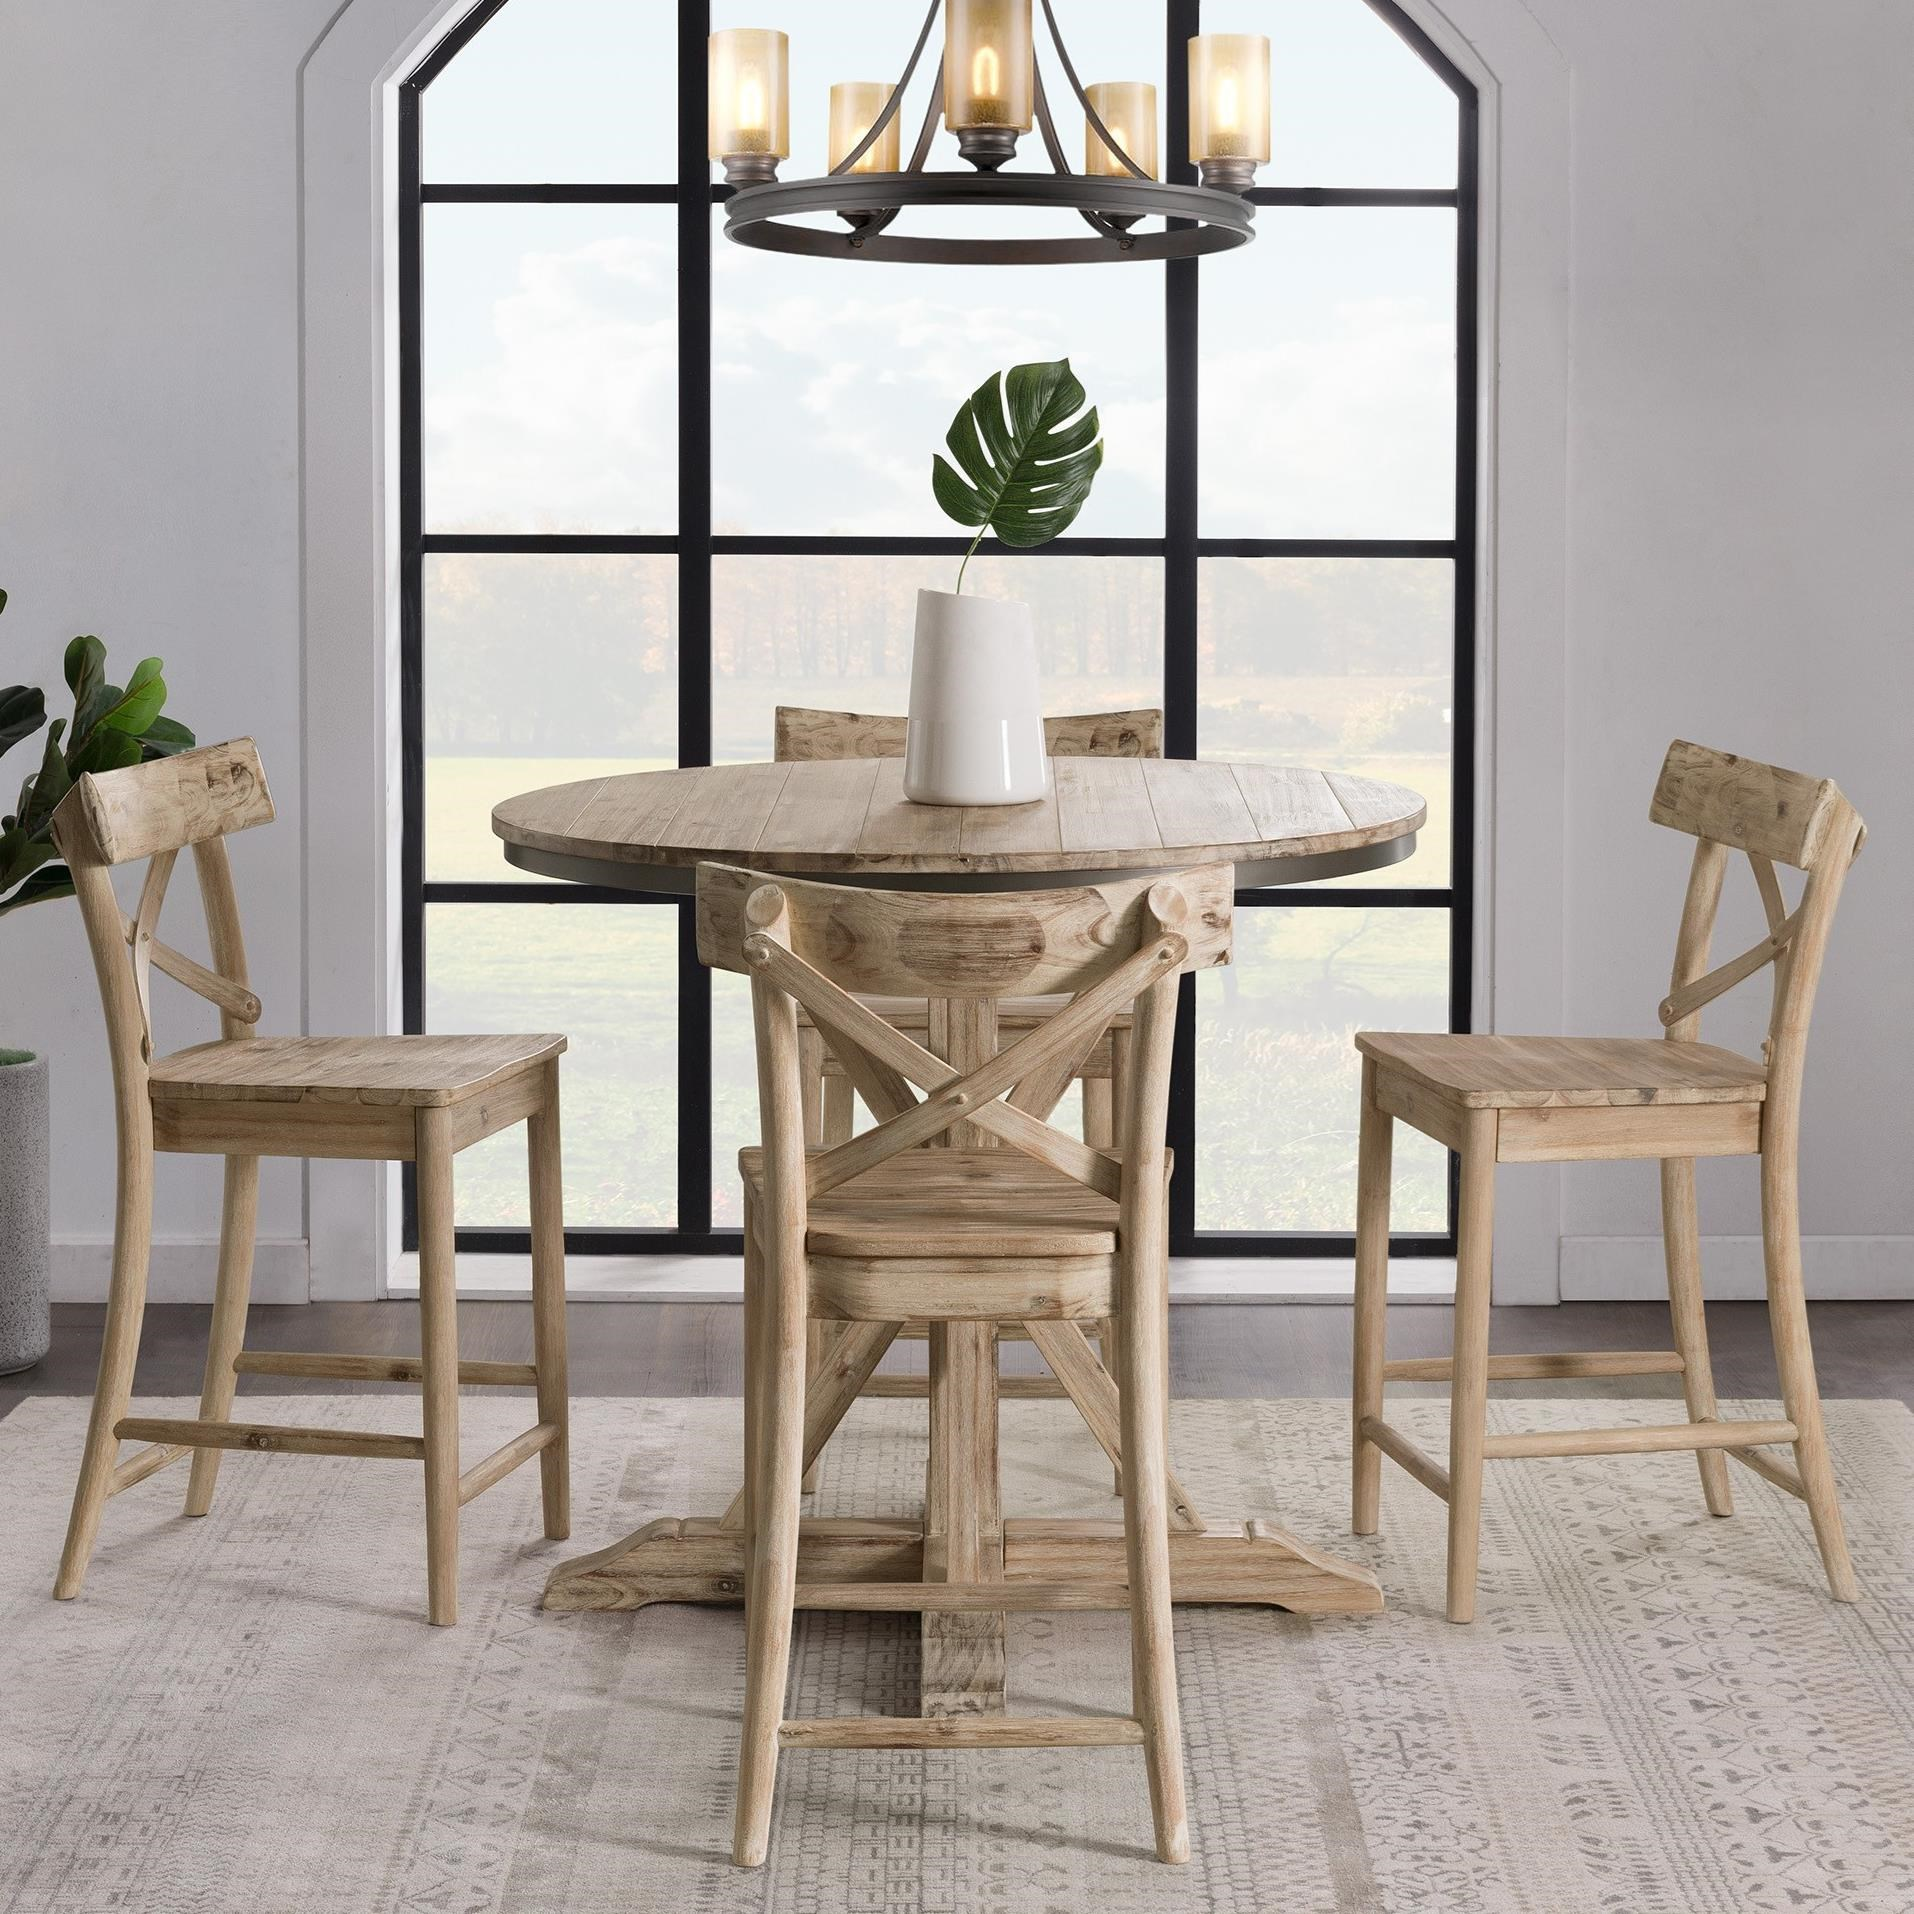 Round Counter Height 5-Piece Dining Set